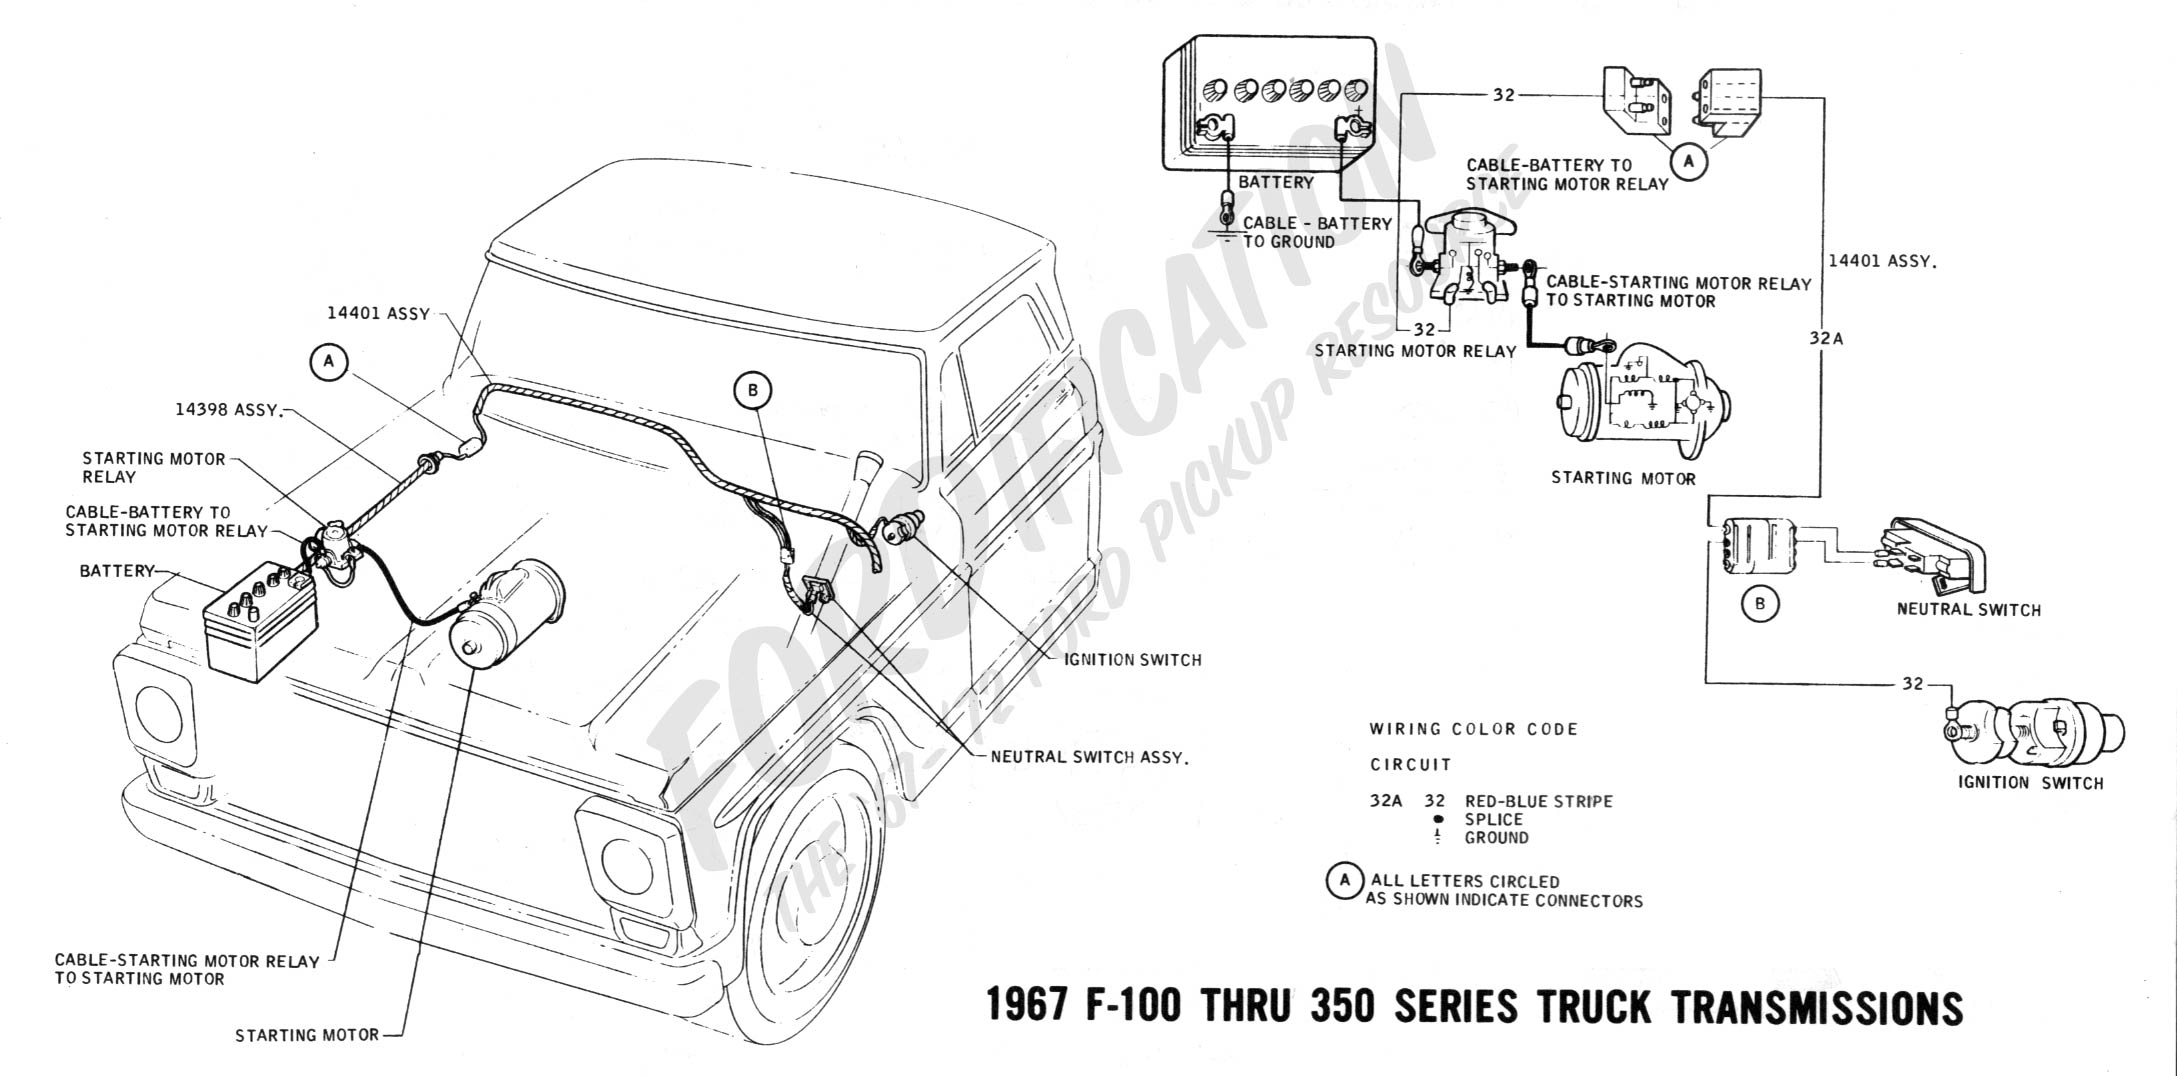 1986 Ford Ranger Wiring Schematic Trusted Diagram Ltd Auto Electrical U2022 1999 Parts